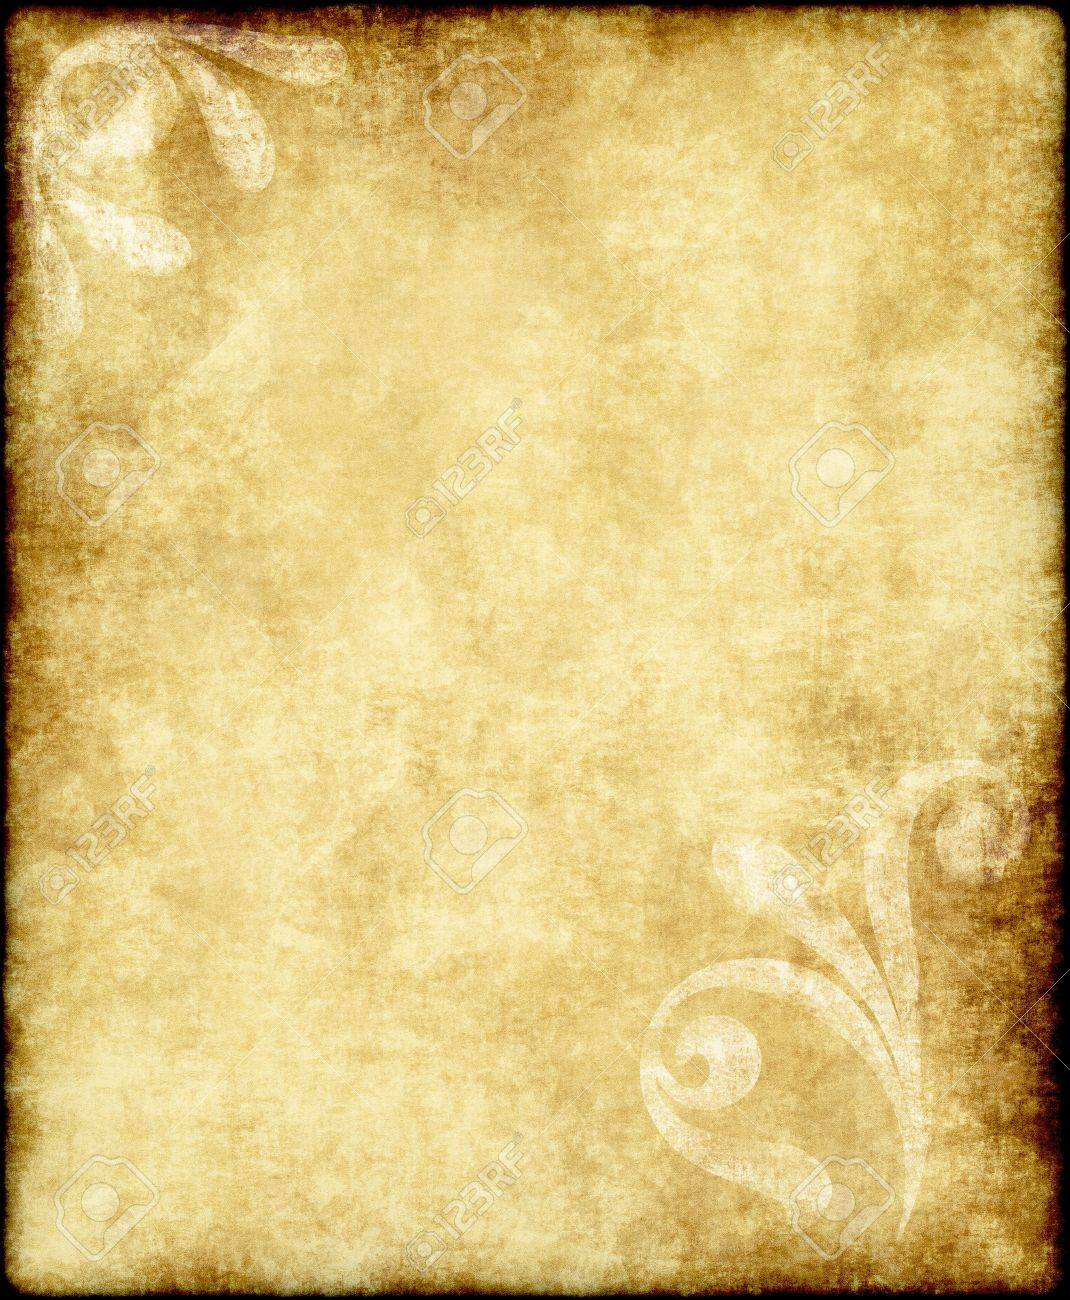 Well-liked Large Old Paper Or Parchment Background Texture With Large Floral  DD92